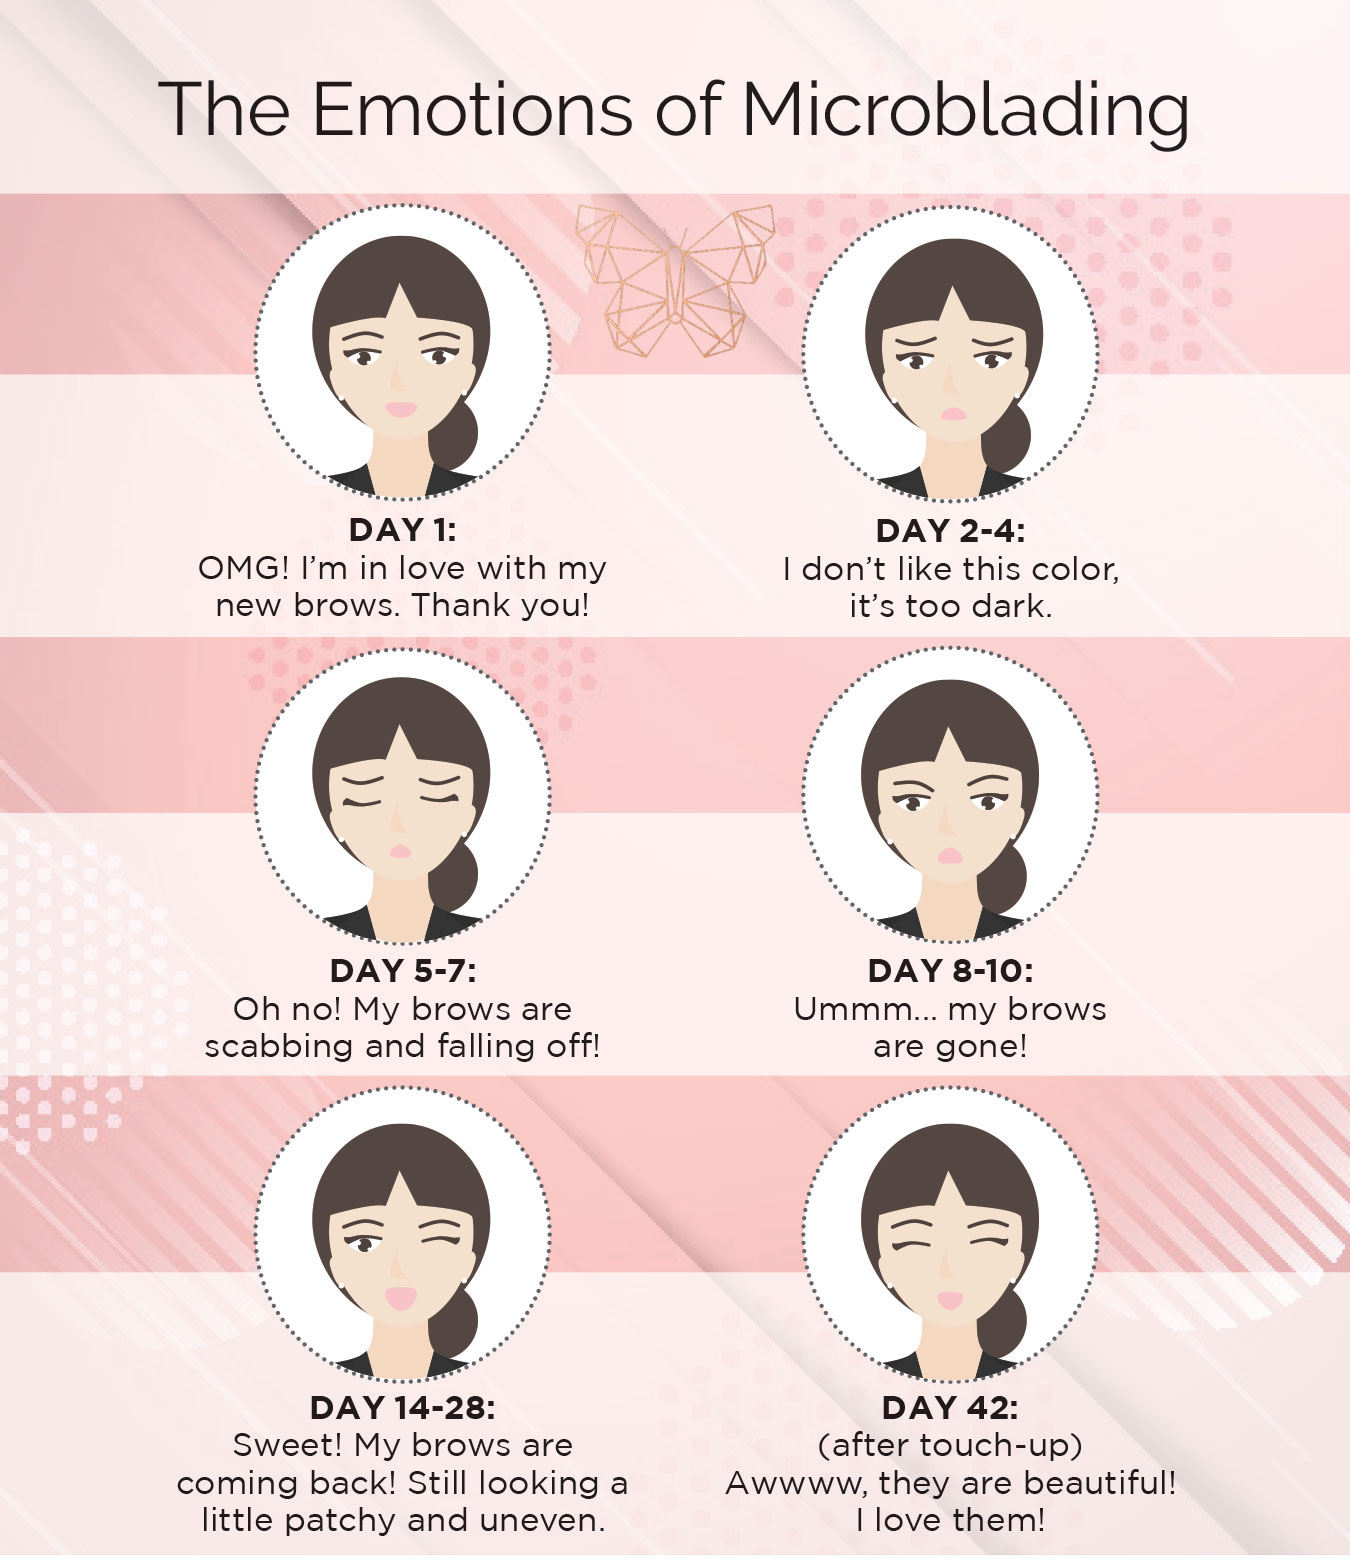 Microblading-Emotions-Chart.jpg